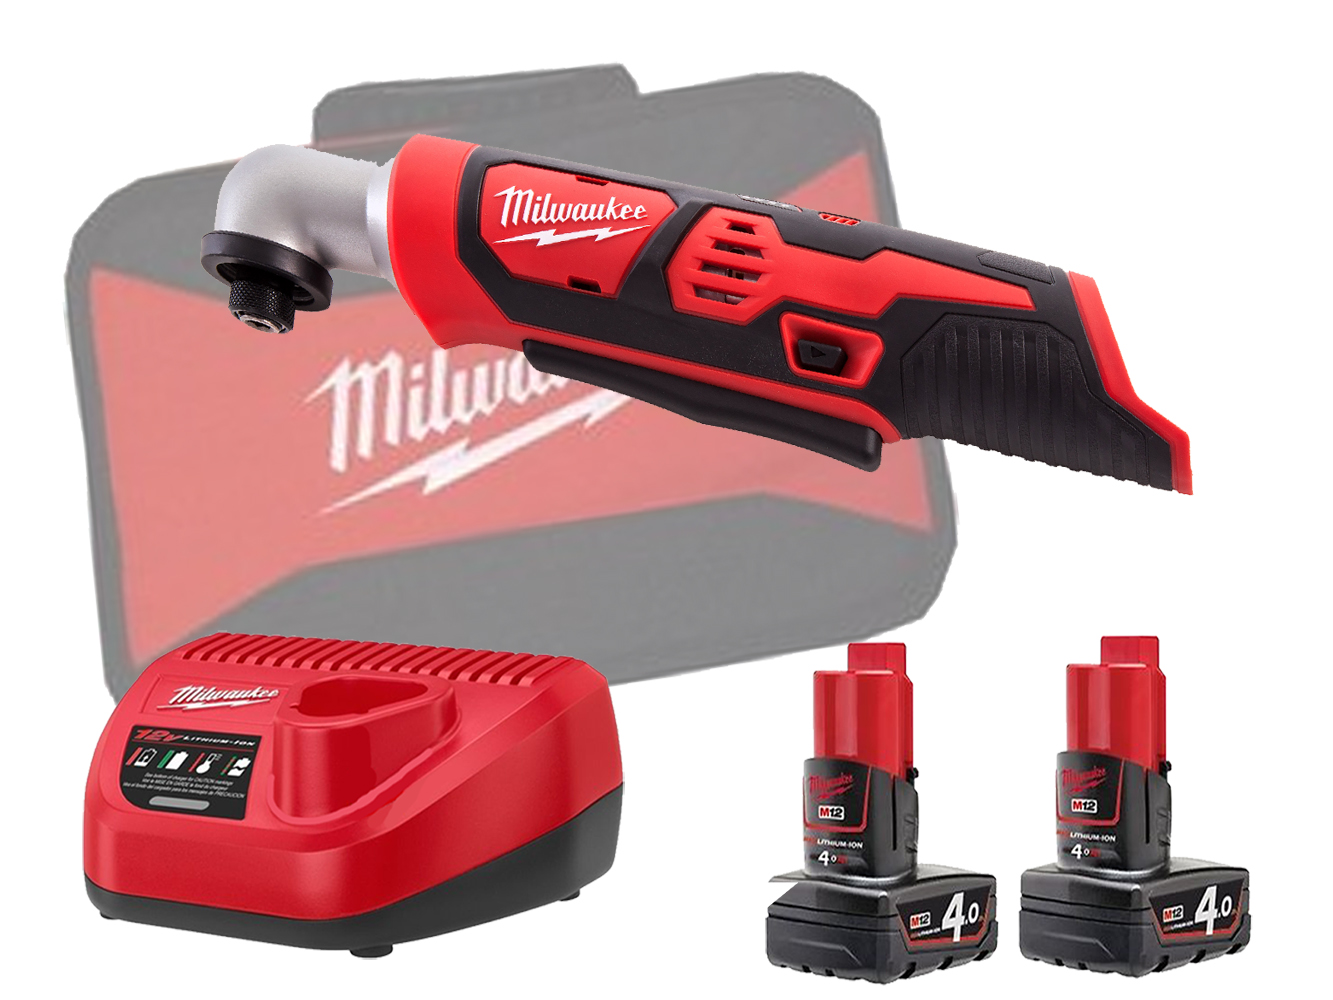 MILWAUKEE 12V RIGHT ANGLE IMPACT - M12BRAID - 4.0AH PACK